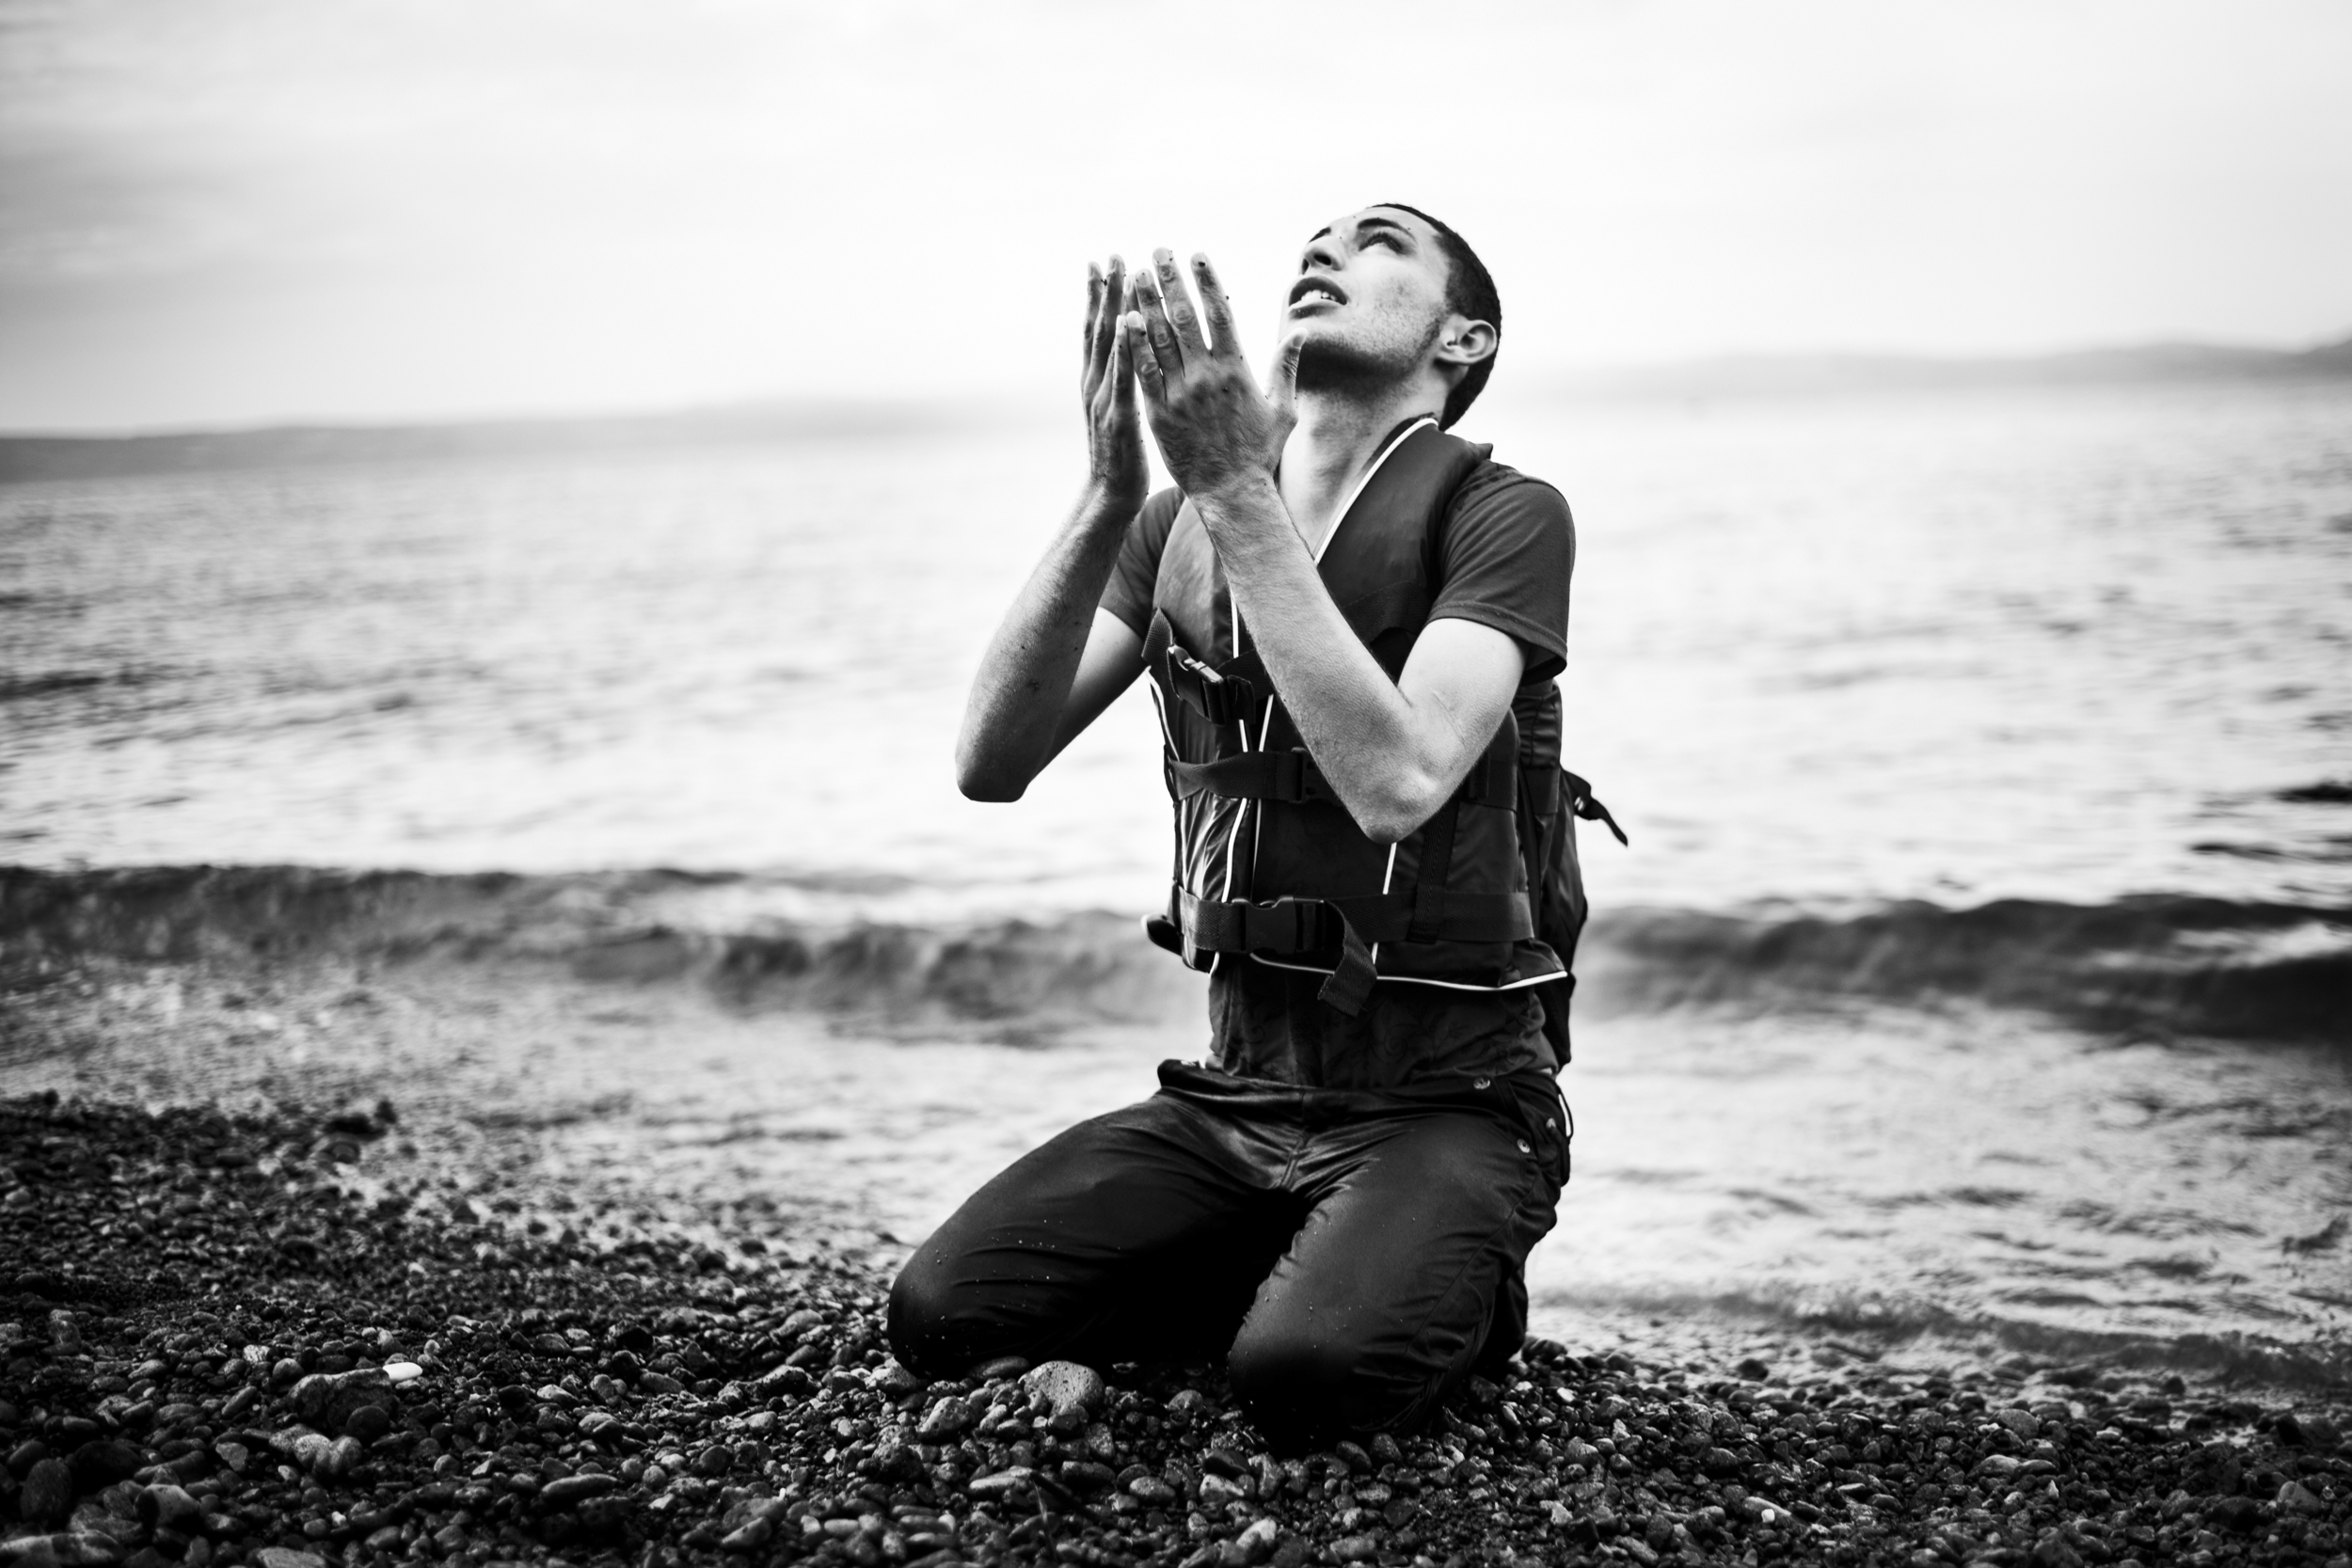 A young man falls to his knees on the beach. It�s September 9th 2015 and he�s thanking the higher powers that he has survived the rubberboat crossing from Turkey to Greece. Other refugees hug while cheering and crying. A woman collapses from exhaustion while her child screams. Boat number 26 of the day has reached the shore at the small village of Skala Sikamineas on the Greek island Lesvos.The refugee crisis in Europe has been called the worst since the Second World War. 2015 was the year, where a large majority of Europeans for the first time realized just how serious the crises has become. According to the International Organization for Migration (IOM) hundreds of thousands of people have fled towards Northern Europe - almost half crossing the Aegean Sea and into Greece. Over the summer Lesvos became the main gate to the European Union, where local volunteers at the northern beach counted upwards of 60 boats a day filled to the brim with men, woman and children of all ages.